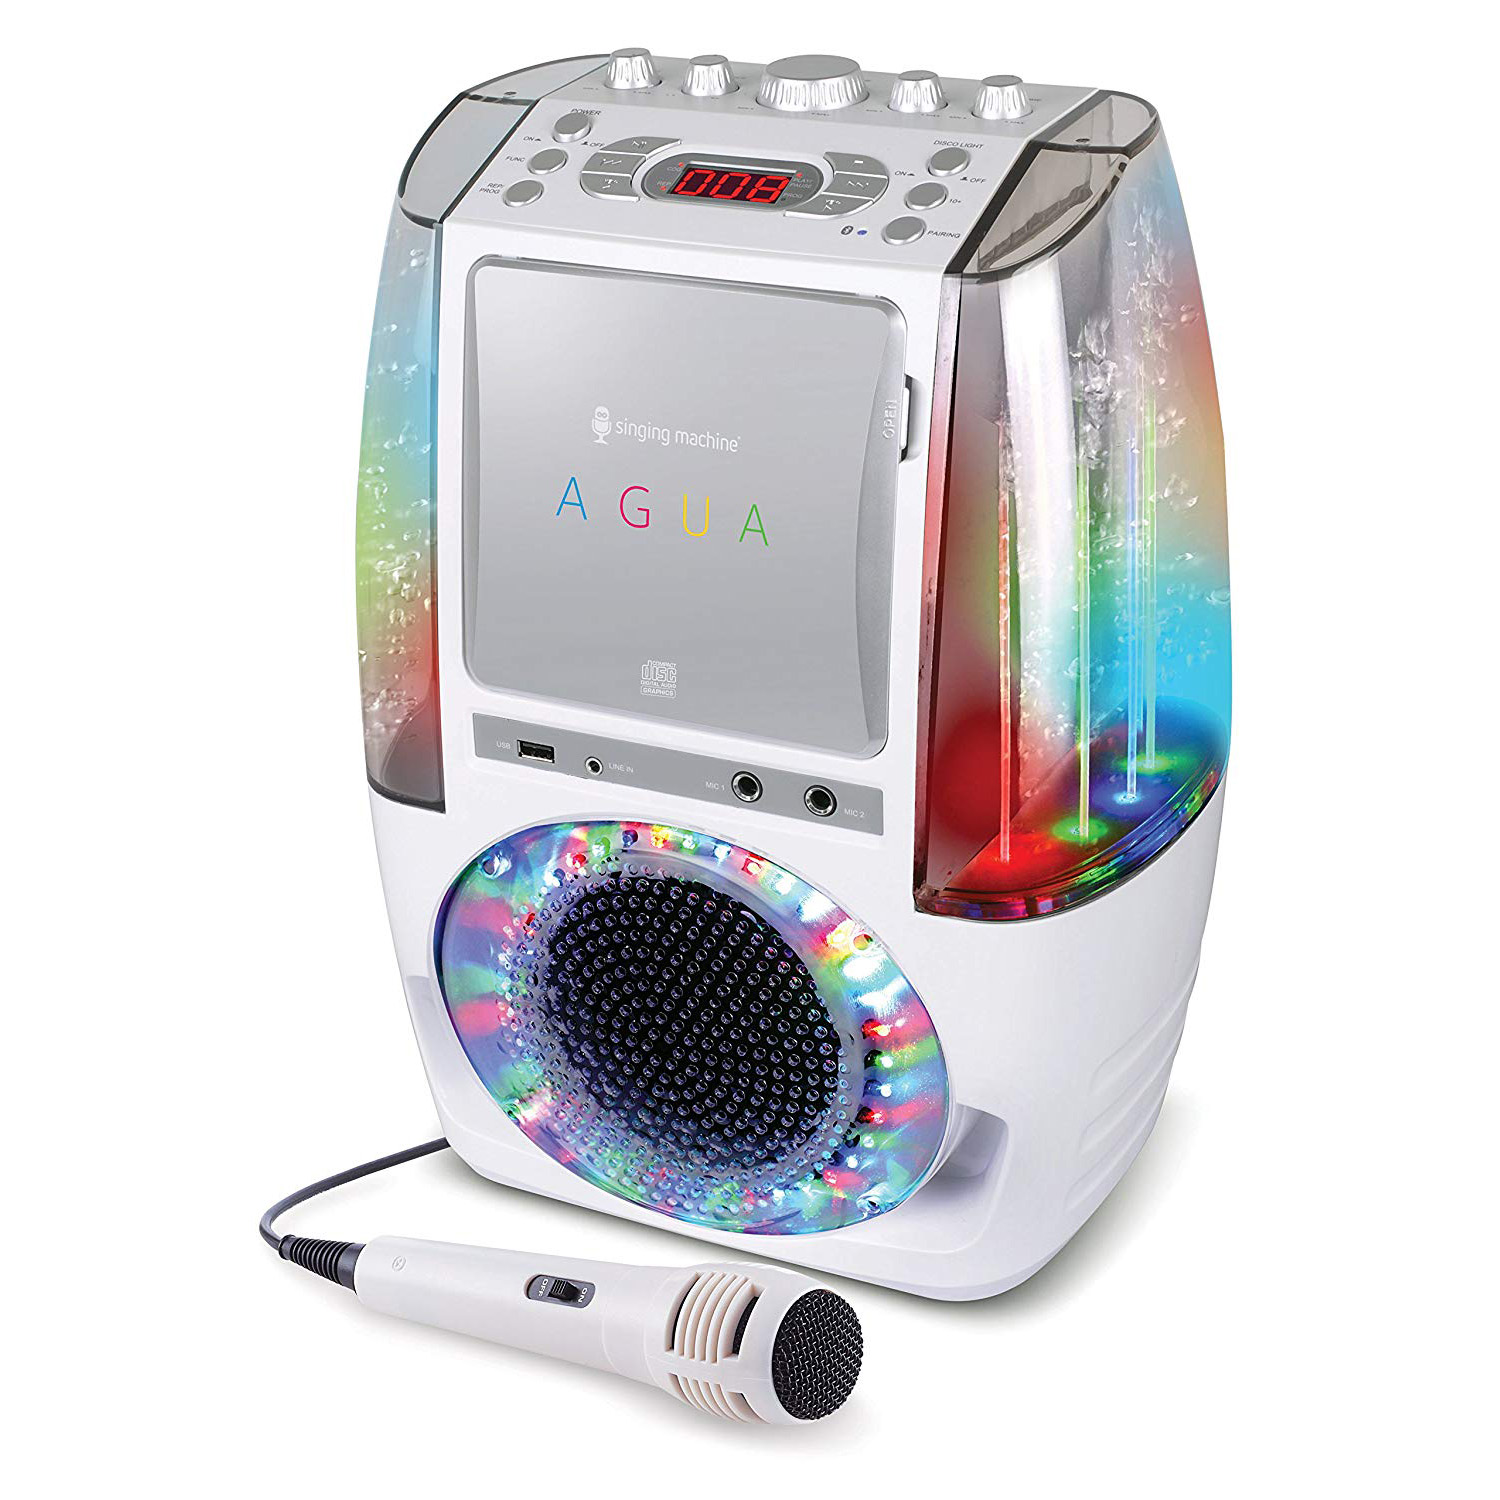 Singing-Machine-Agua-SML605-At-Home-Karaoke-System-w-LED-Disco-Lights thumbnail 19